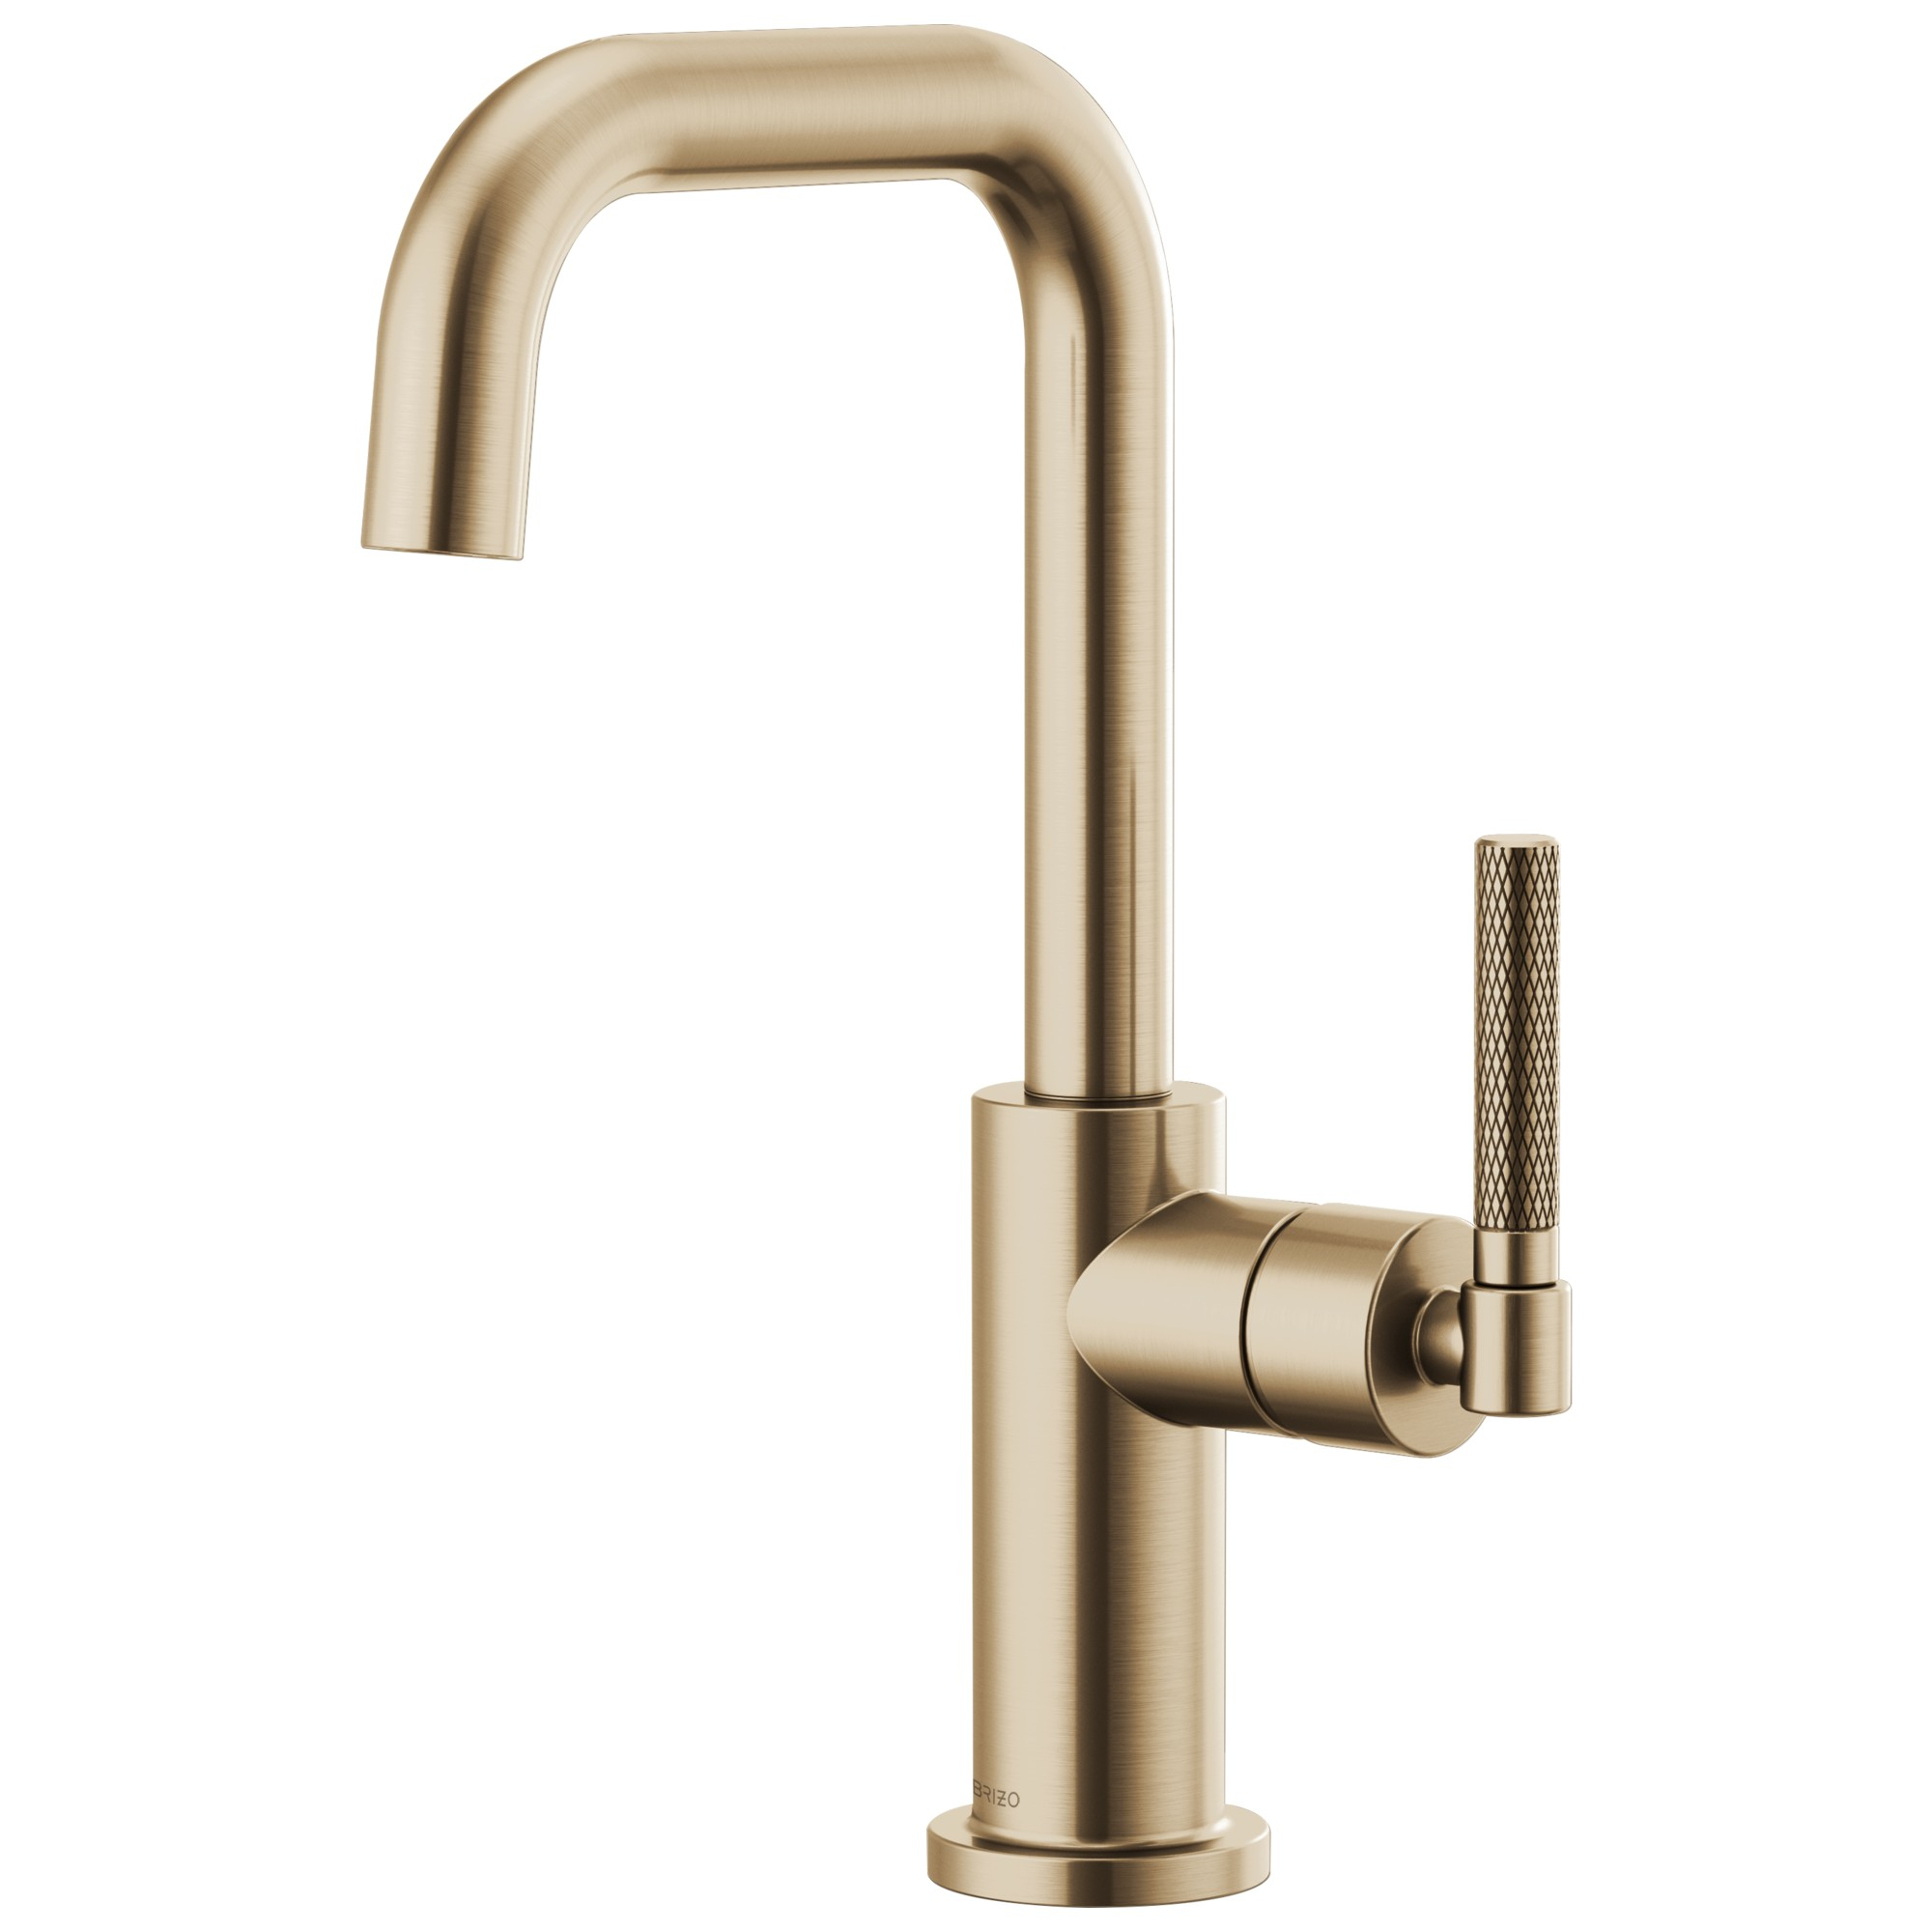 Brizo 61053LF-GL Litze Bar Faucet with Square Spout and Knurled Handle - Luxe Gold